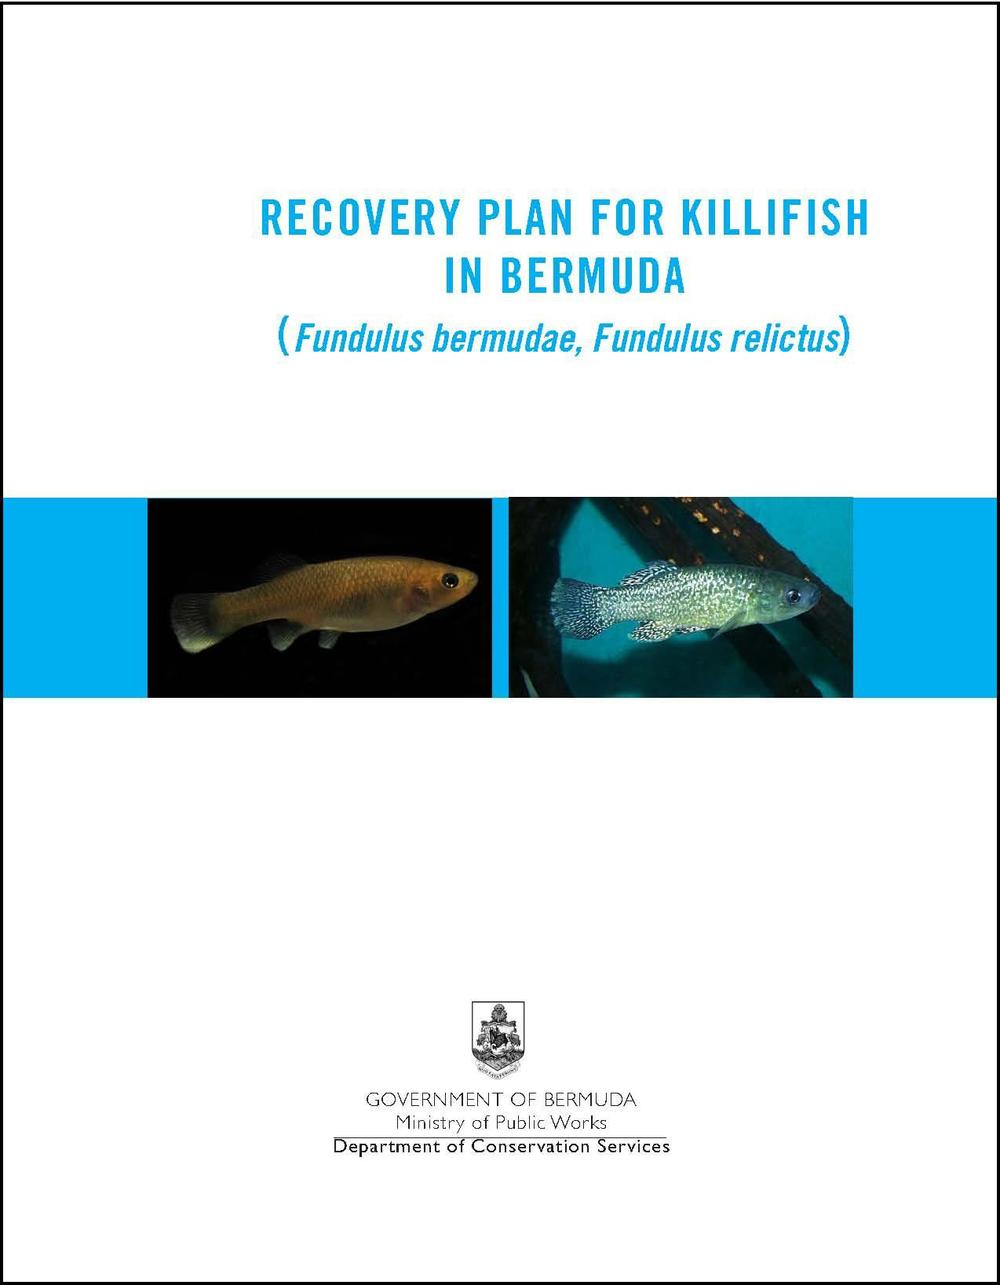 Killifish recovery plan 1112 1.jpg